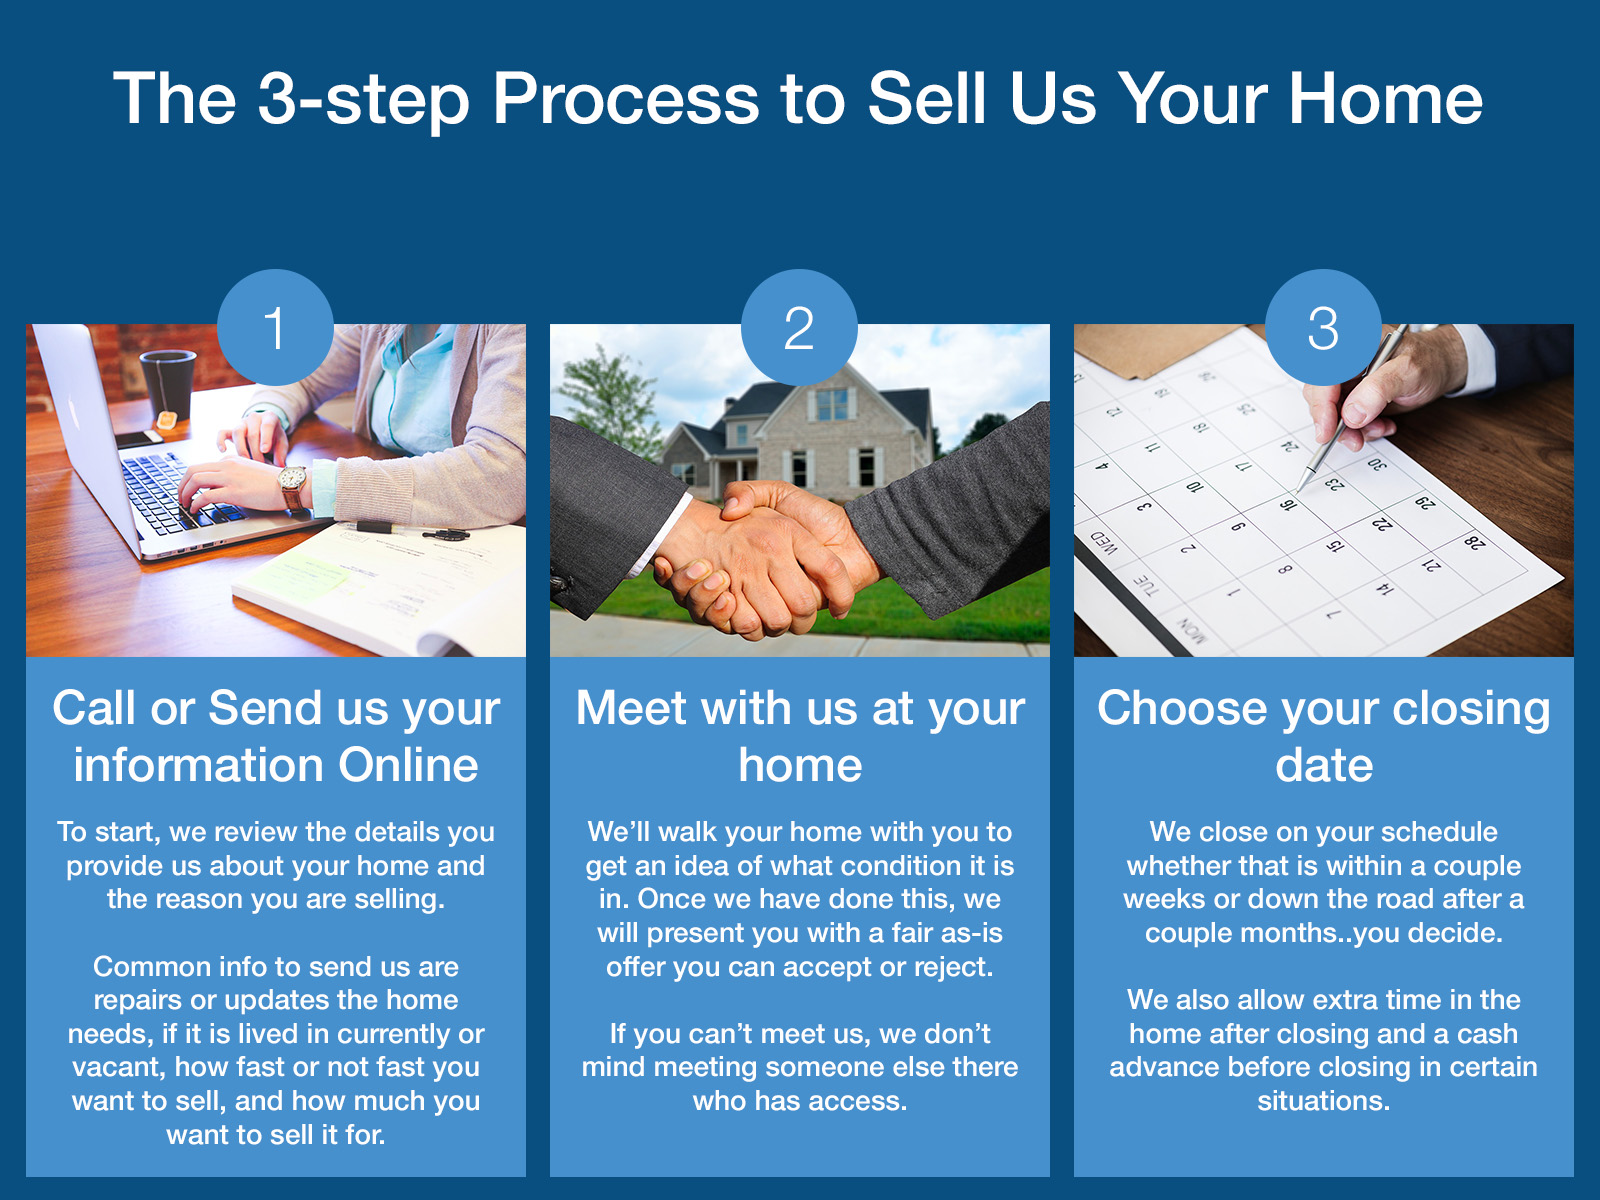 How does selling your home to an investor work